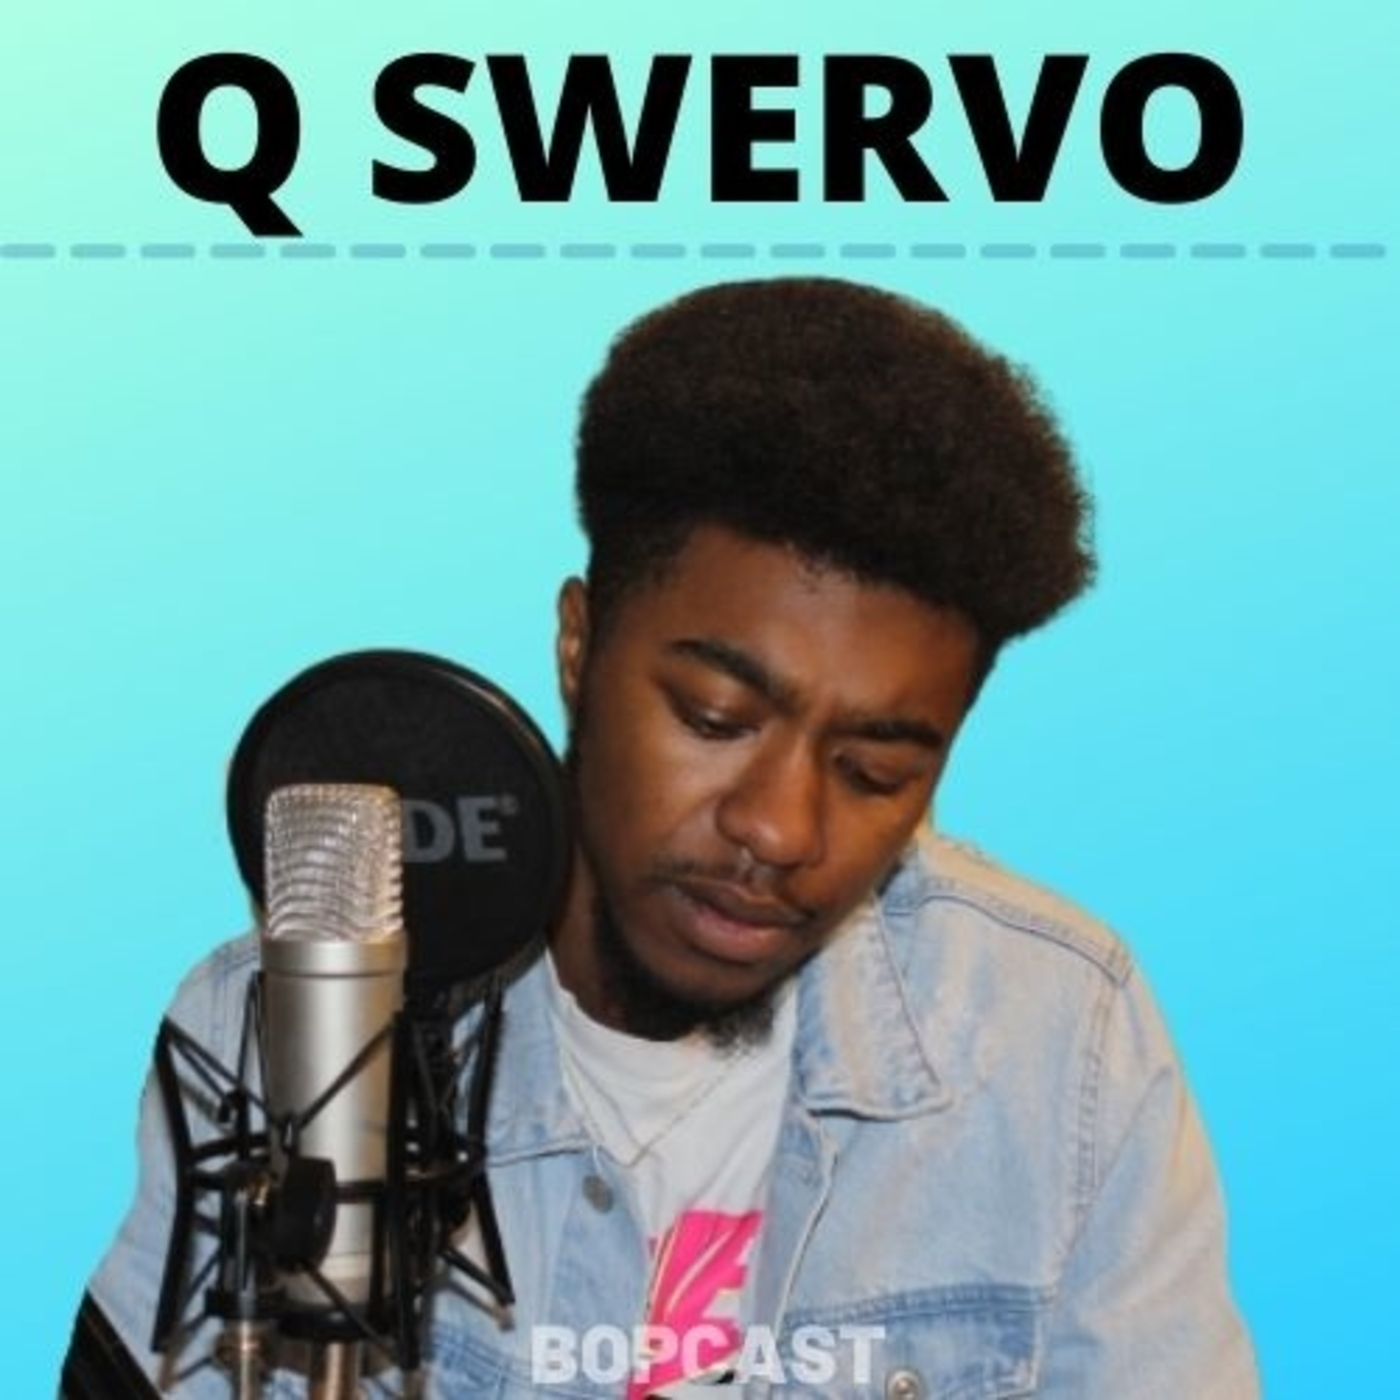 Q Swervo 2 Years Later - Turning Stock Trading into a Full Time Job in 2 Years and How to Get Started with Investing at ANY Level